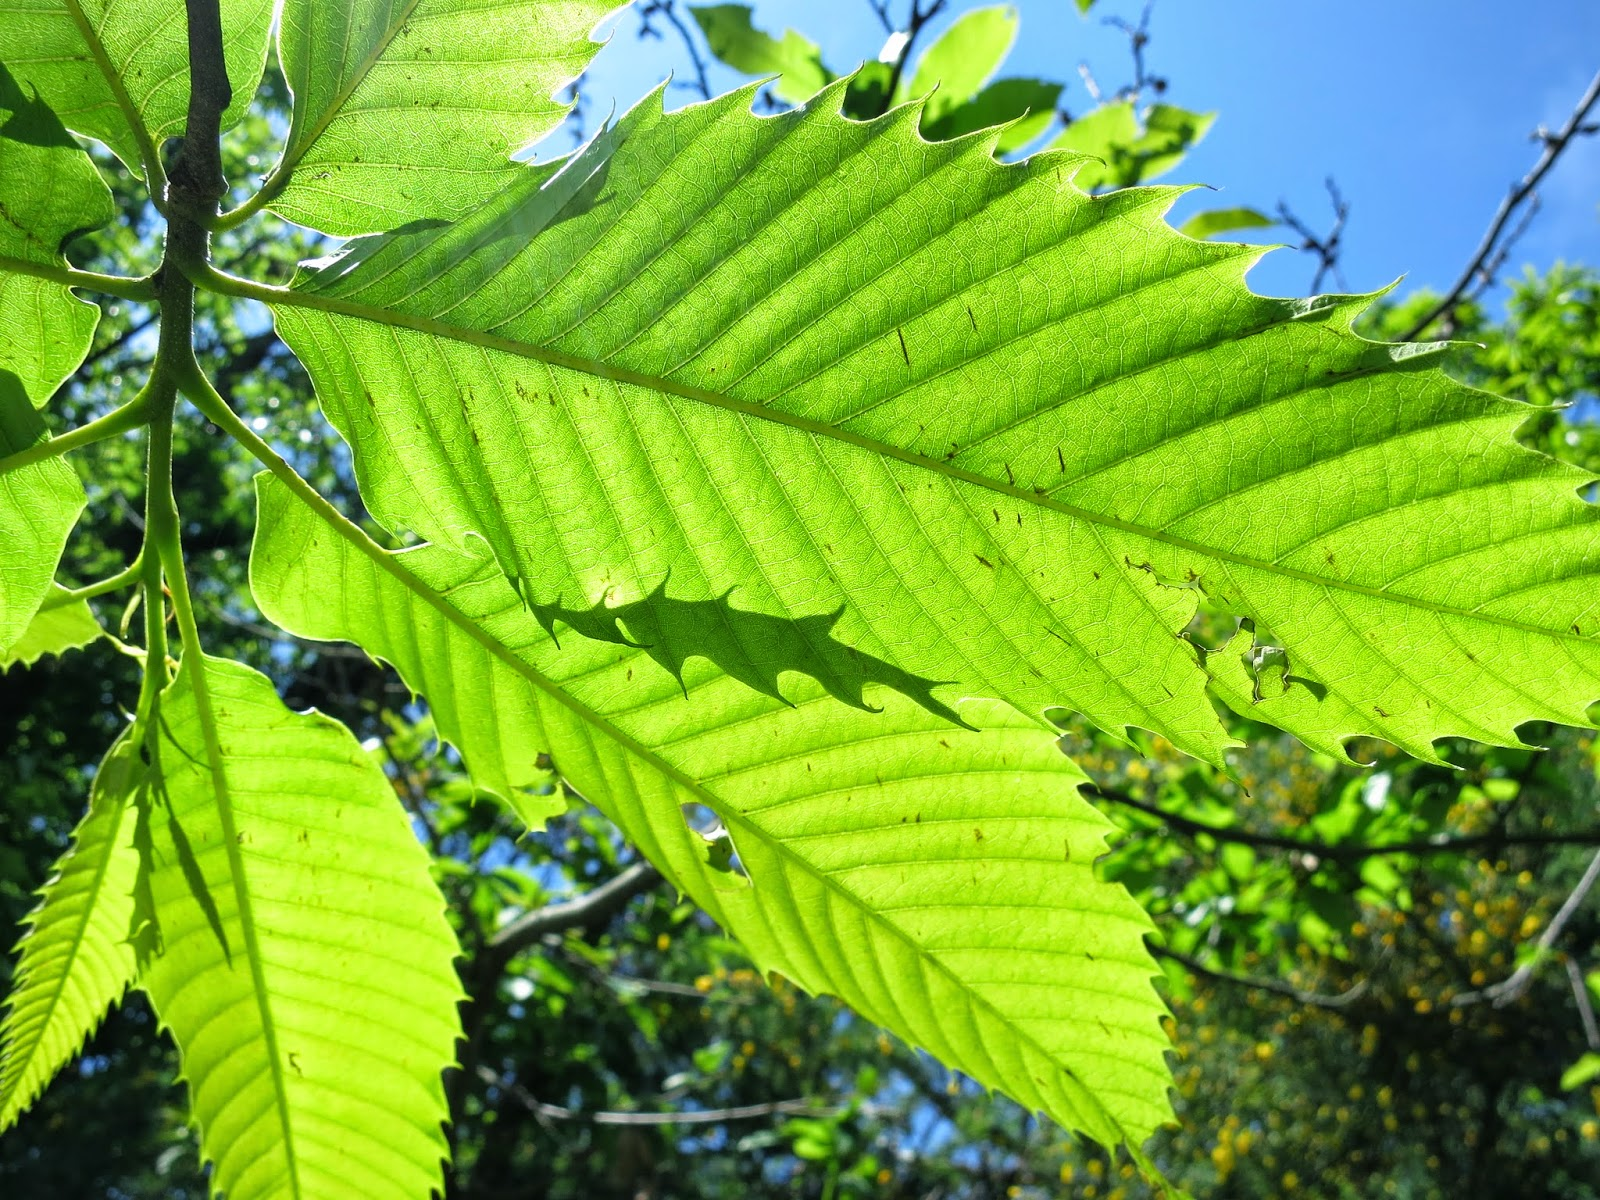 Tuscan chestnut leaves in sun